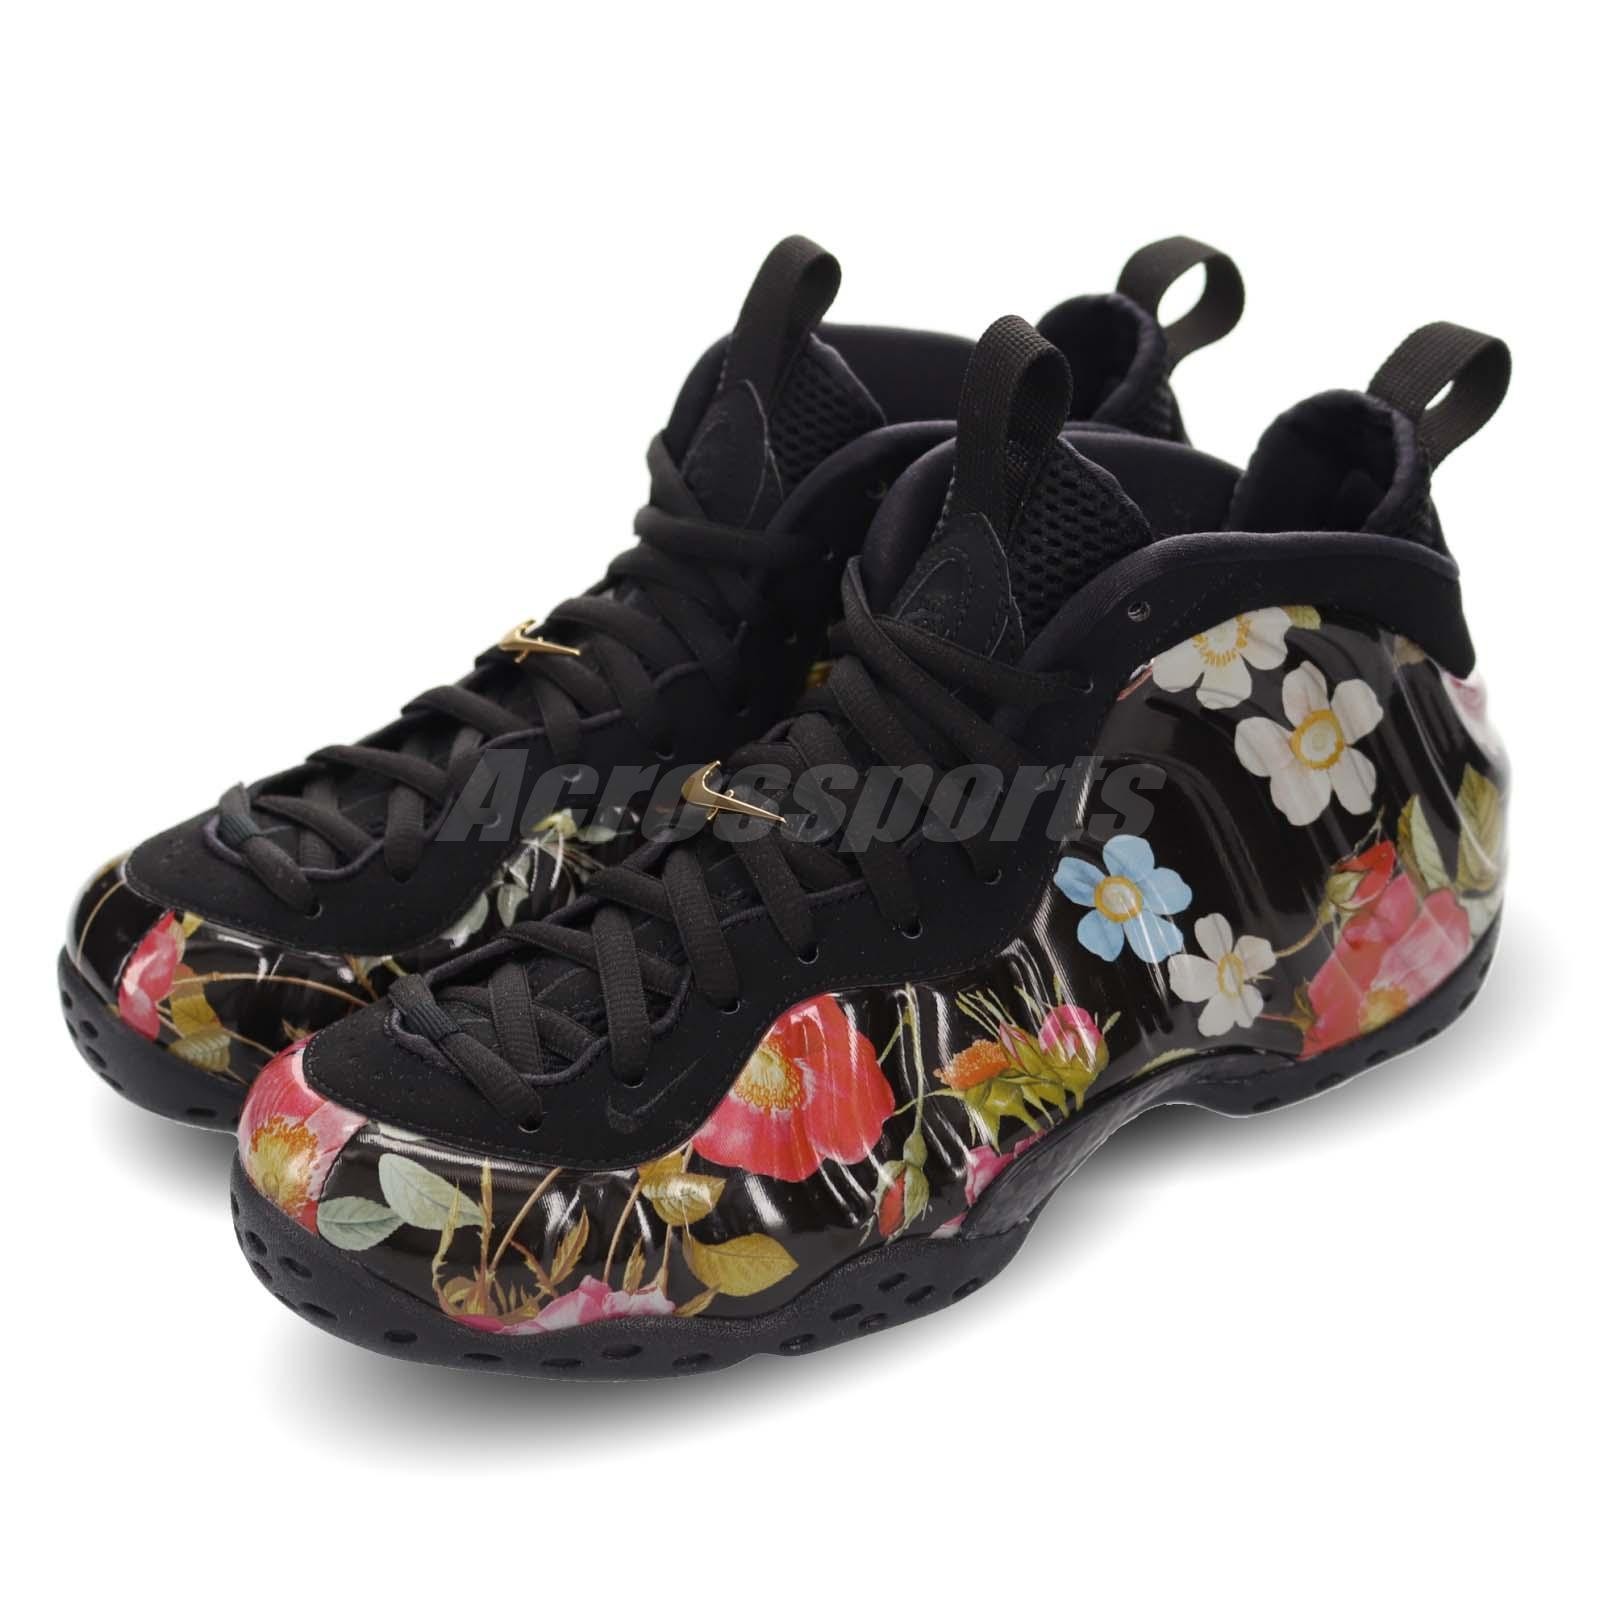 b91380f693f19 Details about Nike Air Foamposite One Floral Black 1 All Star 2019 CNY  Sneakers 314996-012